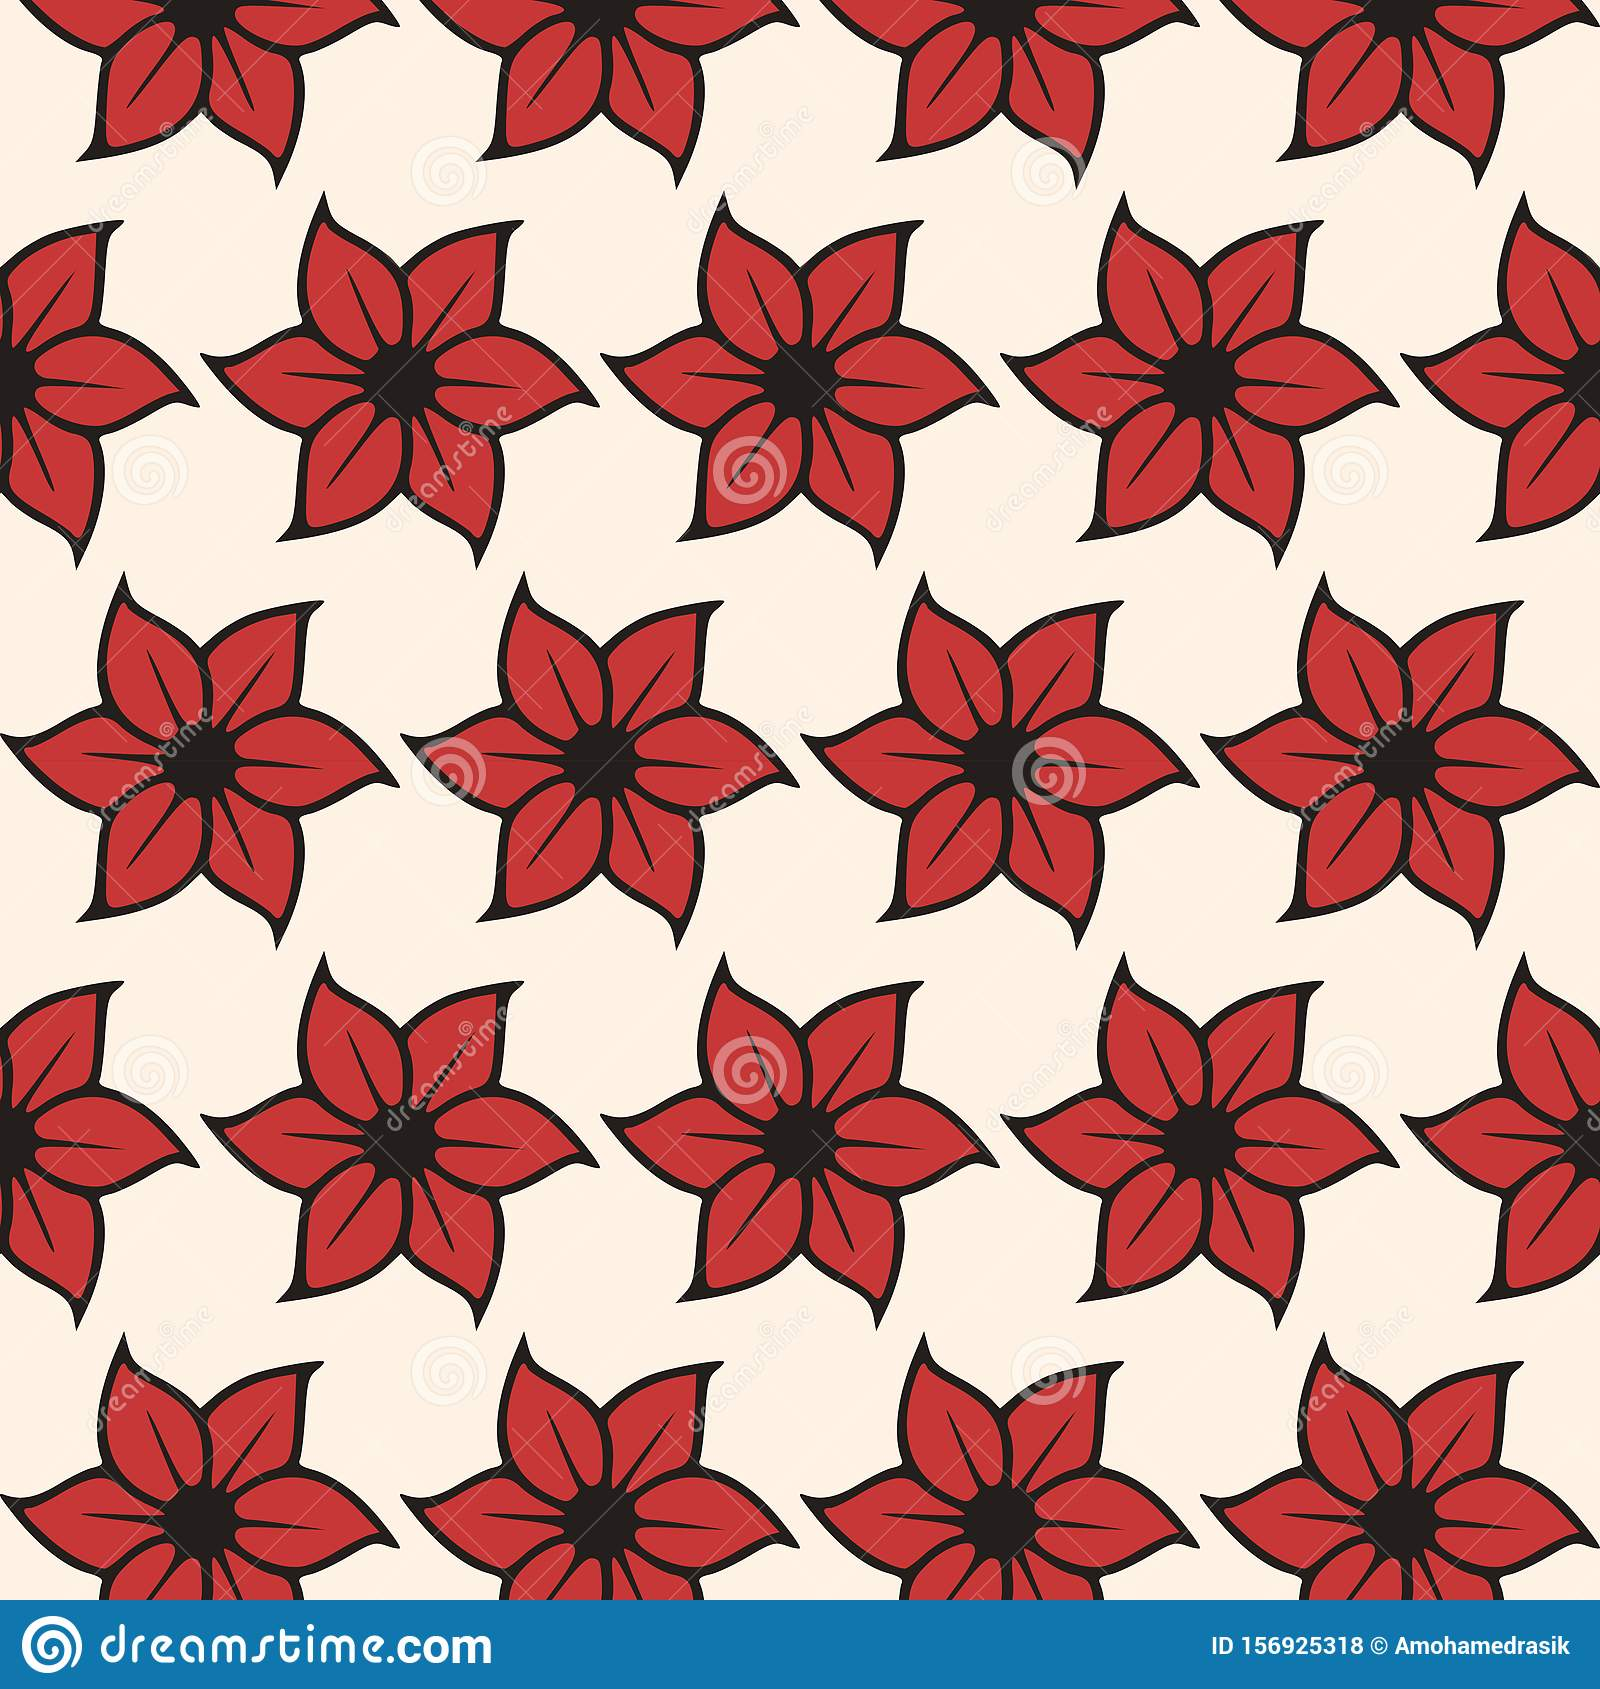 Red floral seamless pattern on white background - Ornamental vector